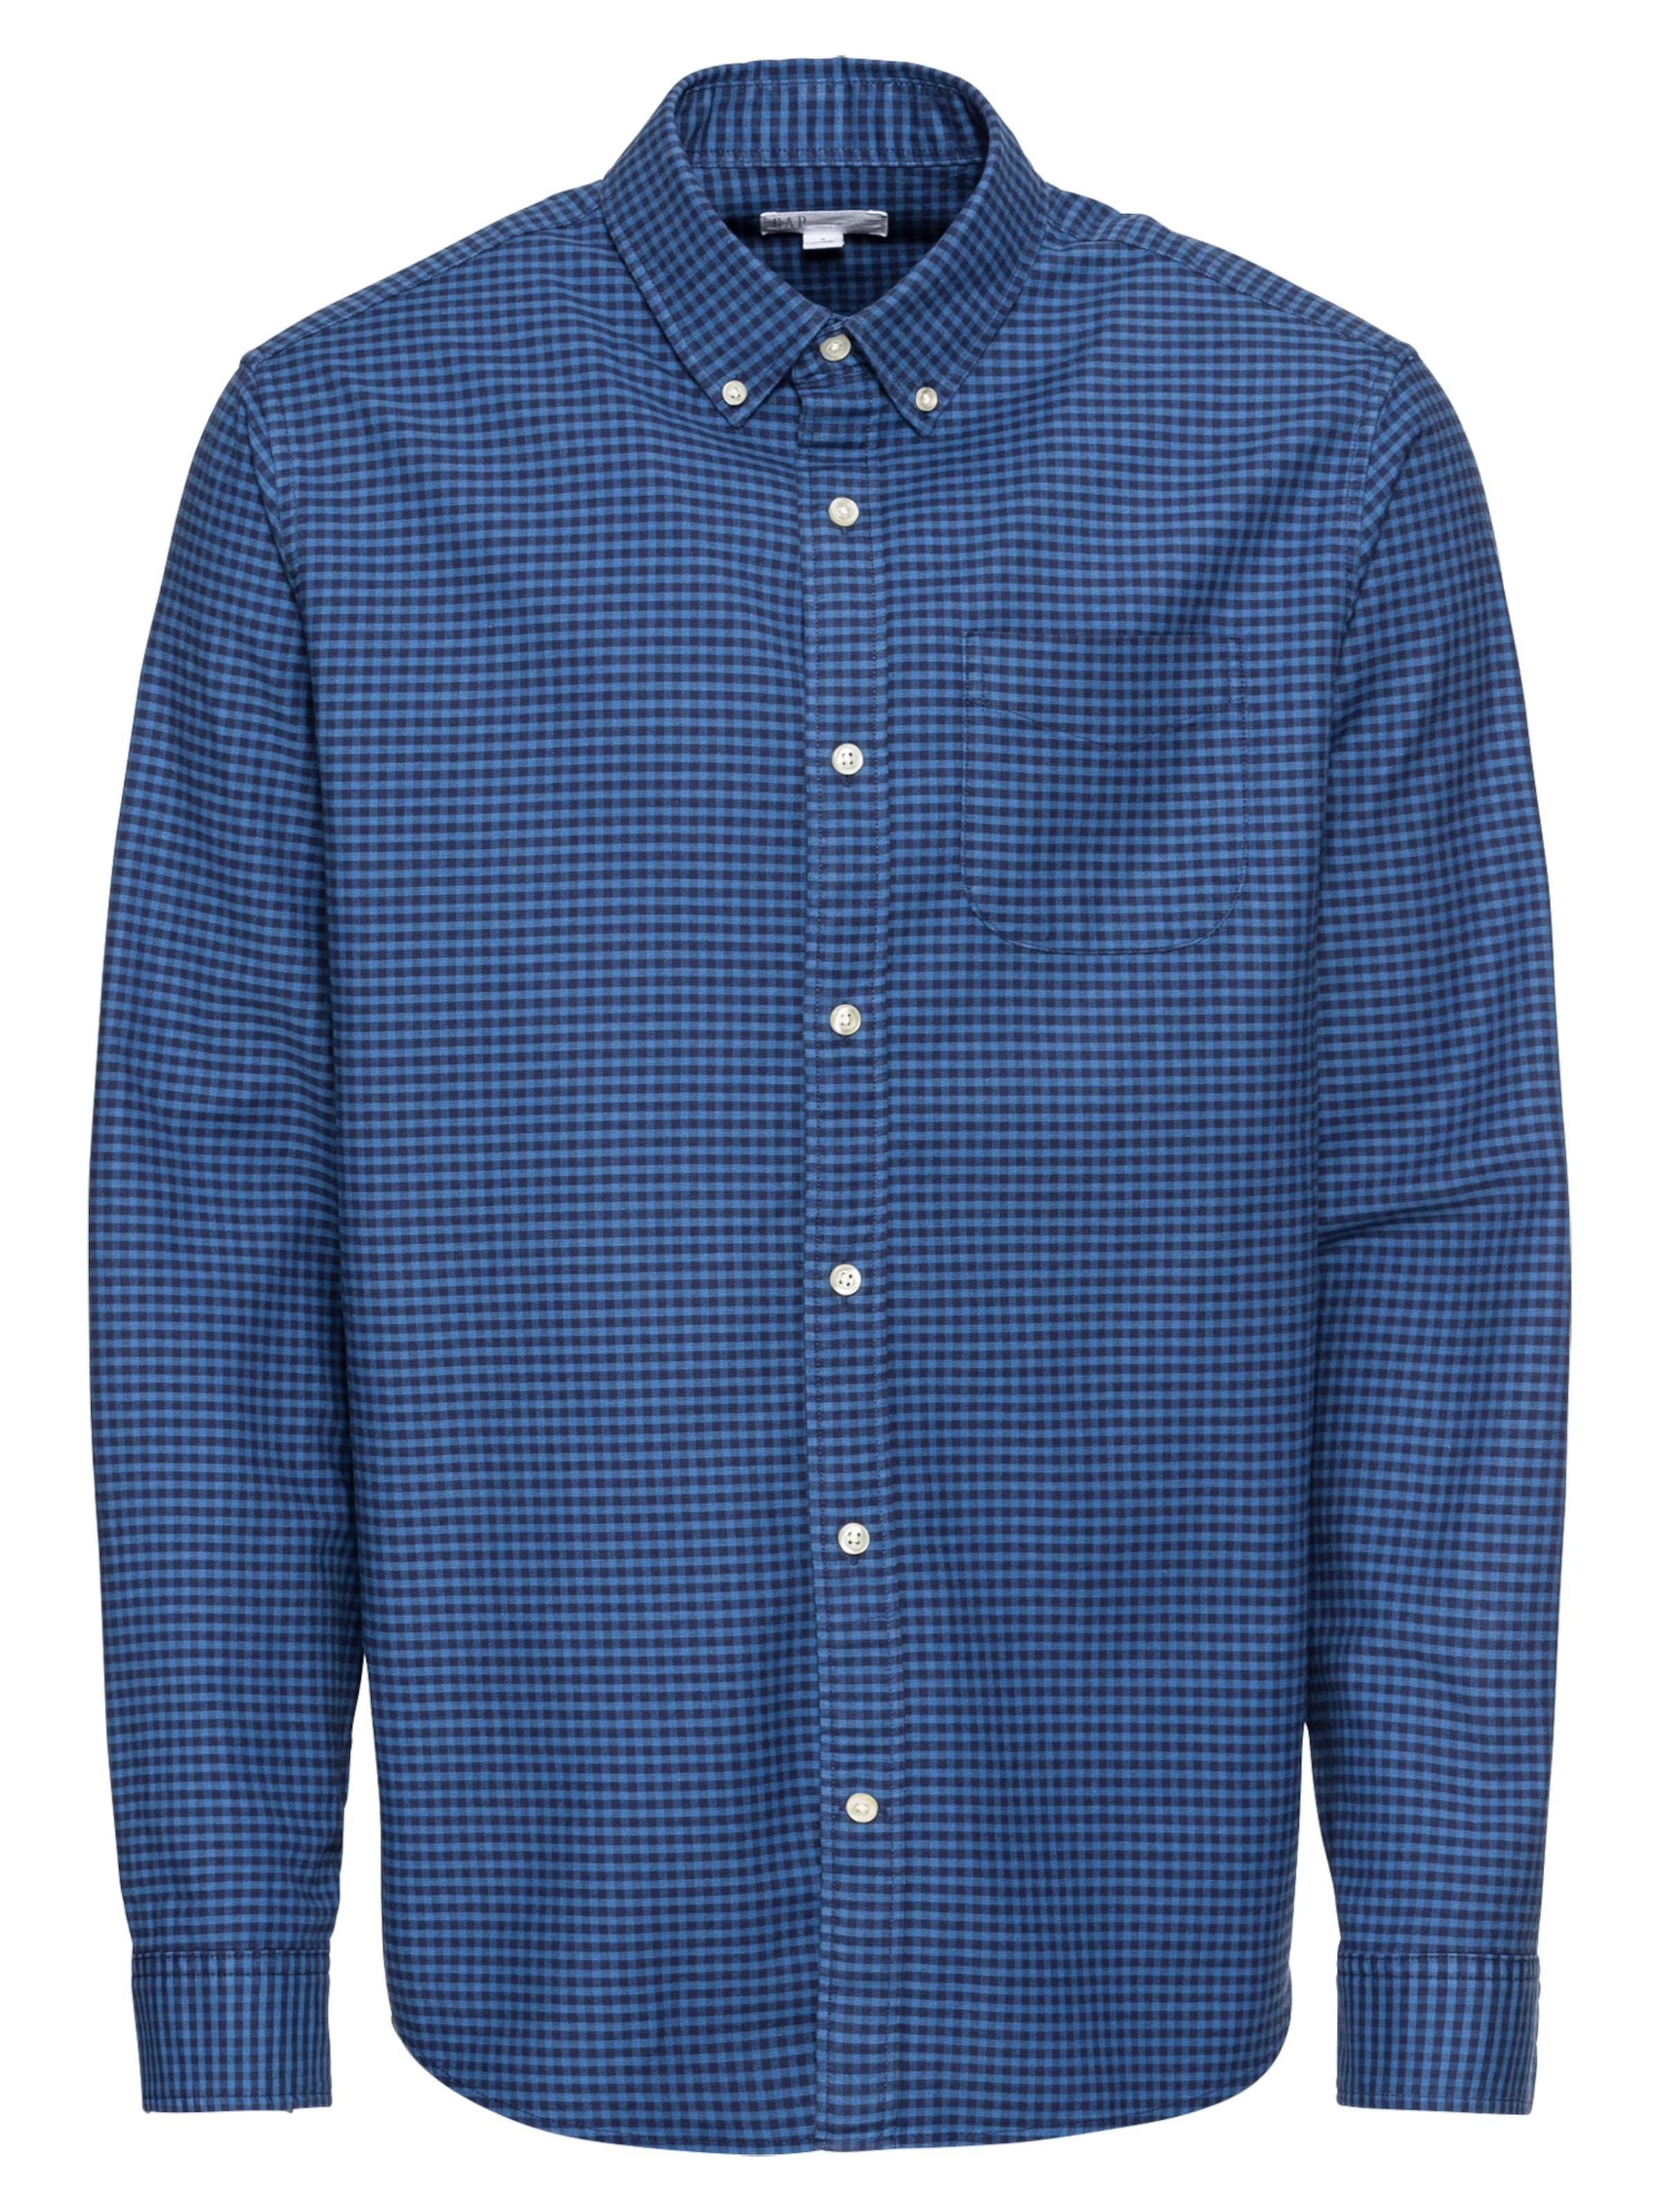 Shirts' En 'holiday Gap Oxford Chemise 2018 Bleu XiuTOPZk